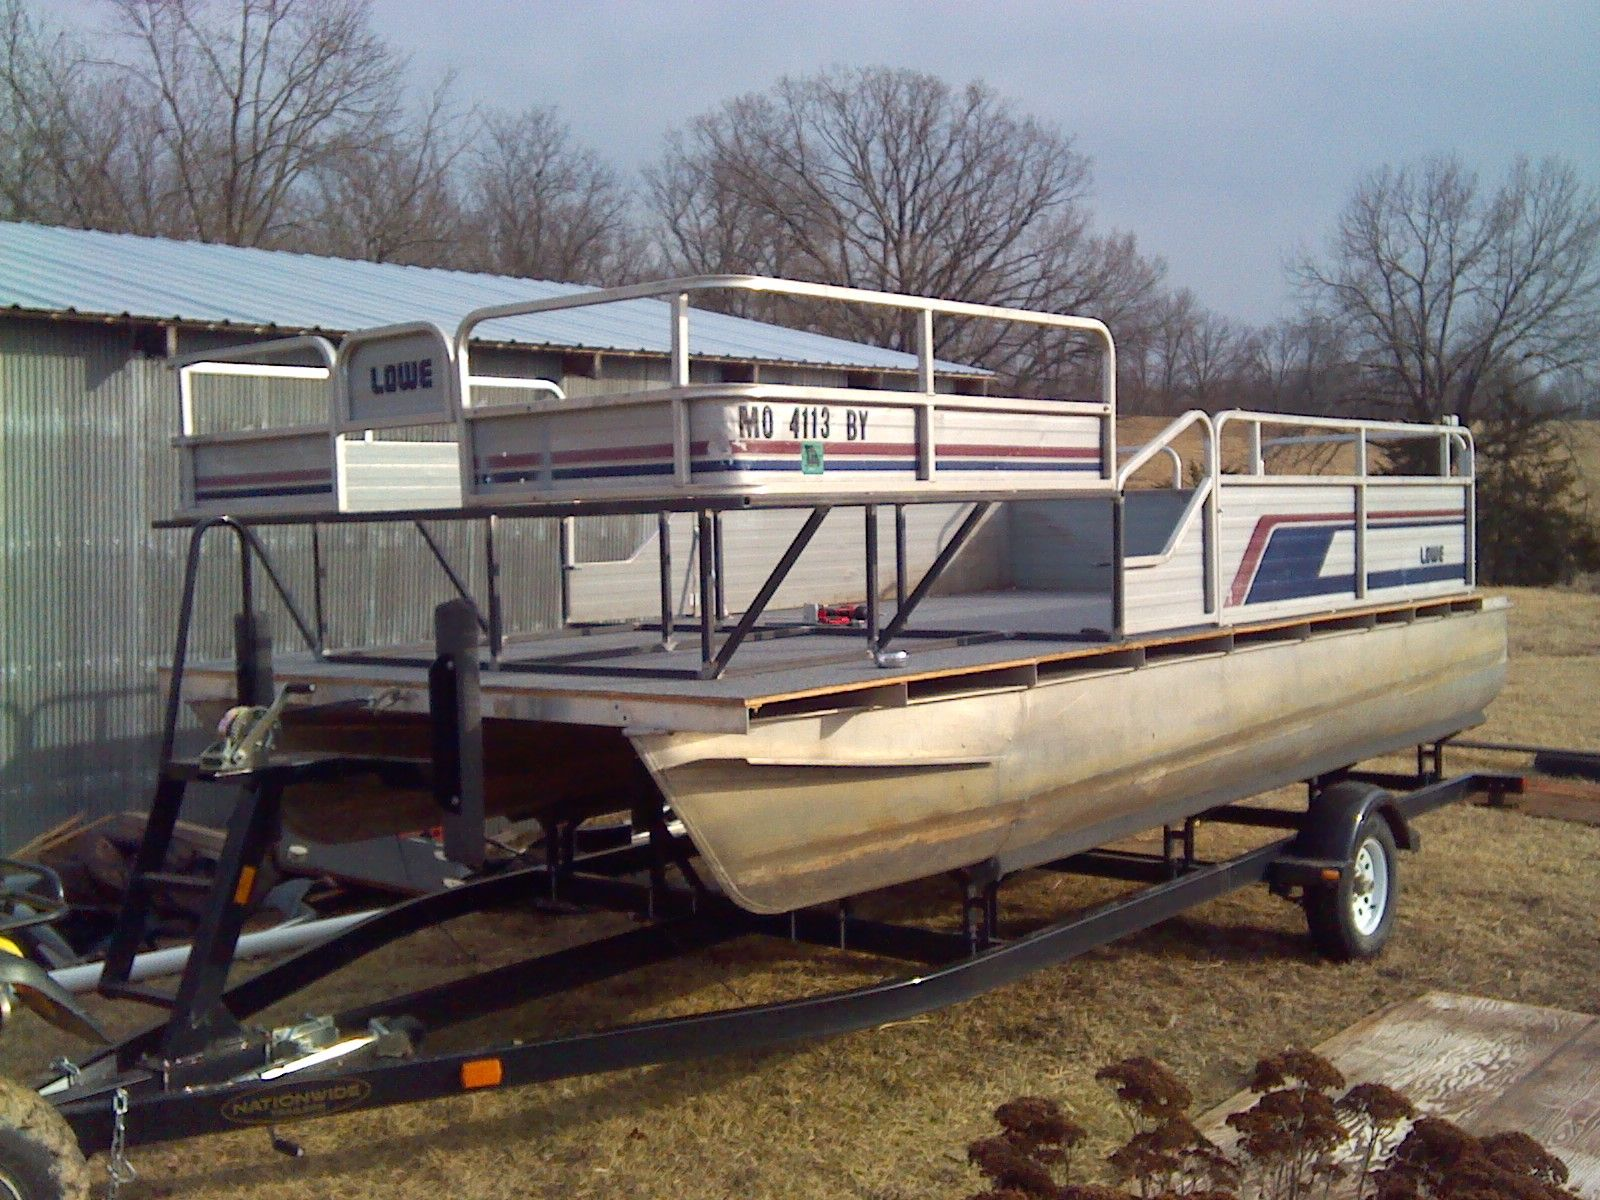 My First Boat and Build 18ft Pontoon | Bowfishing plans | Pinterest ...